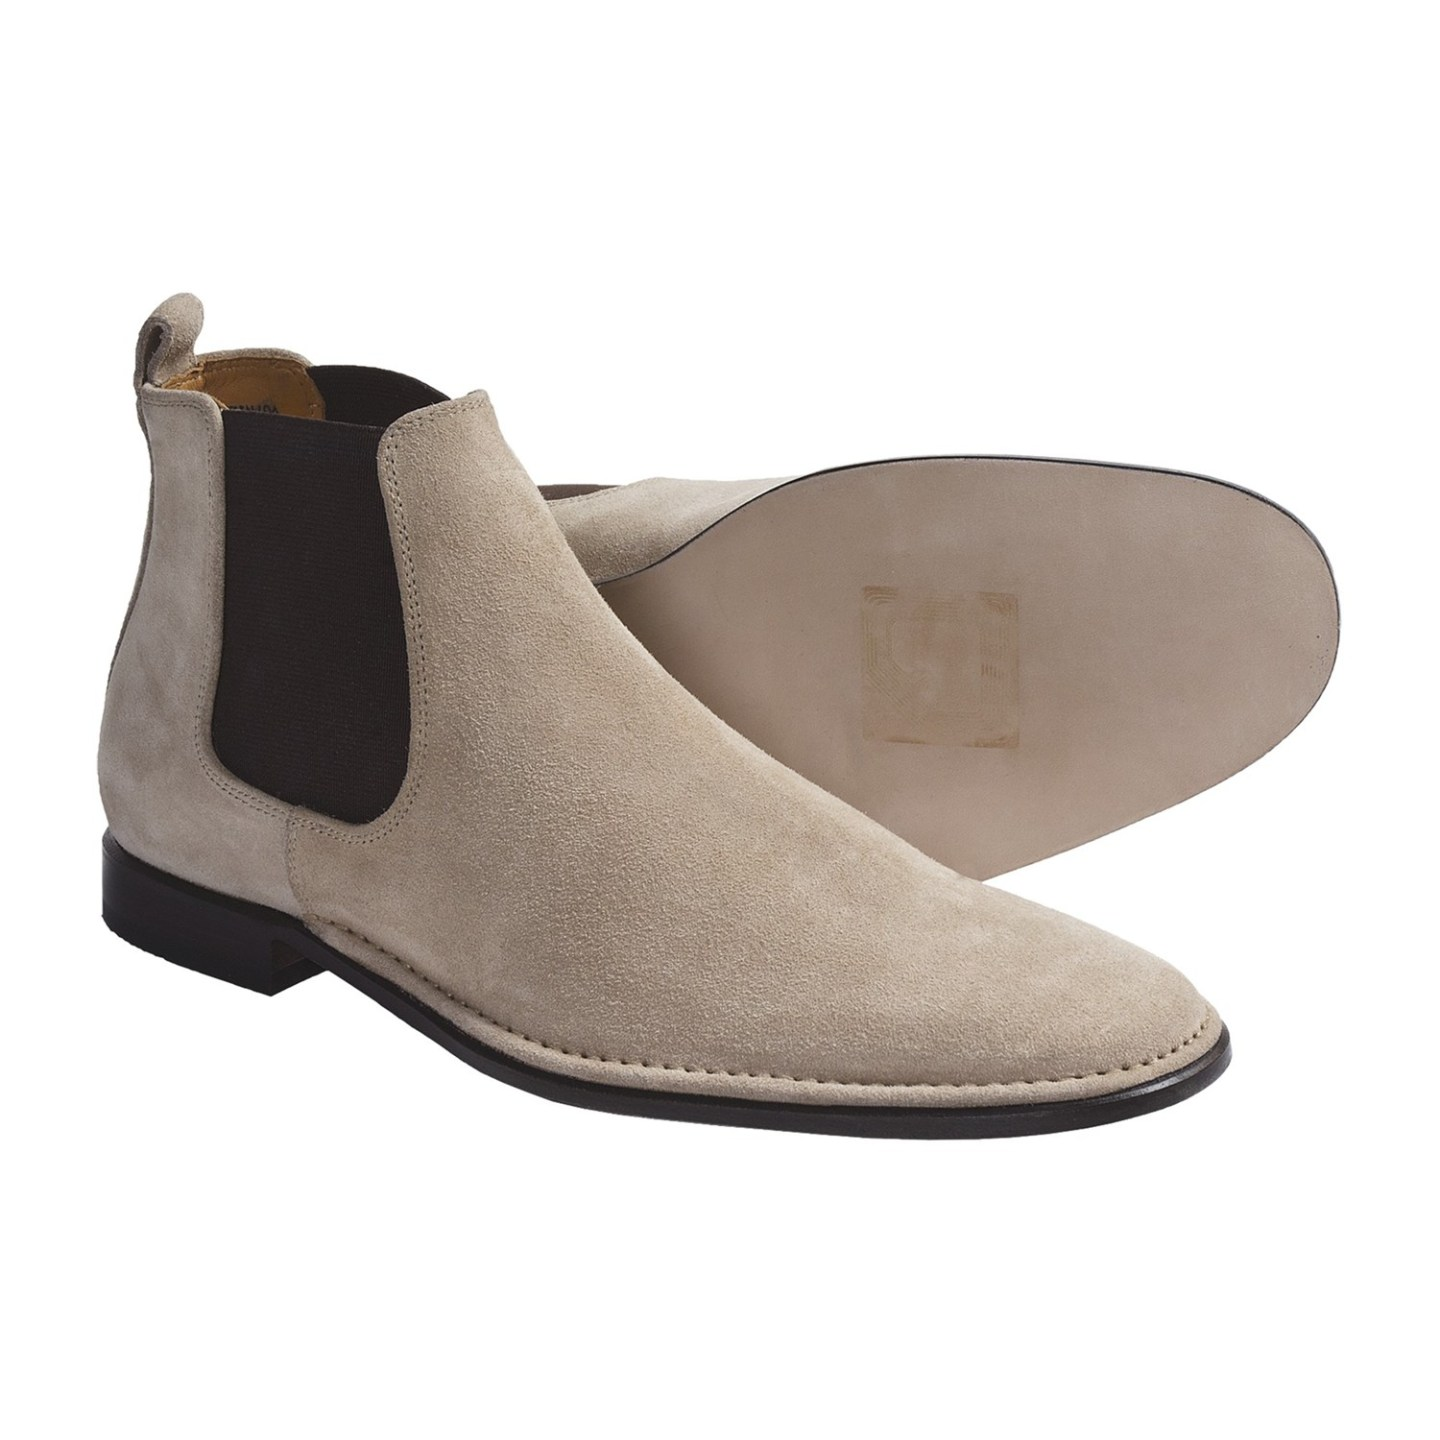 bally-metin-suede-boots-for-men-in-sand~p~4612y_01~1500.3